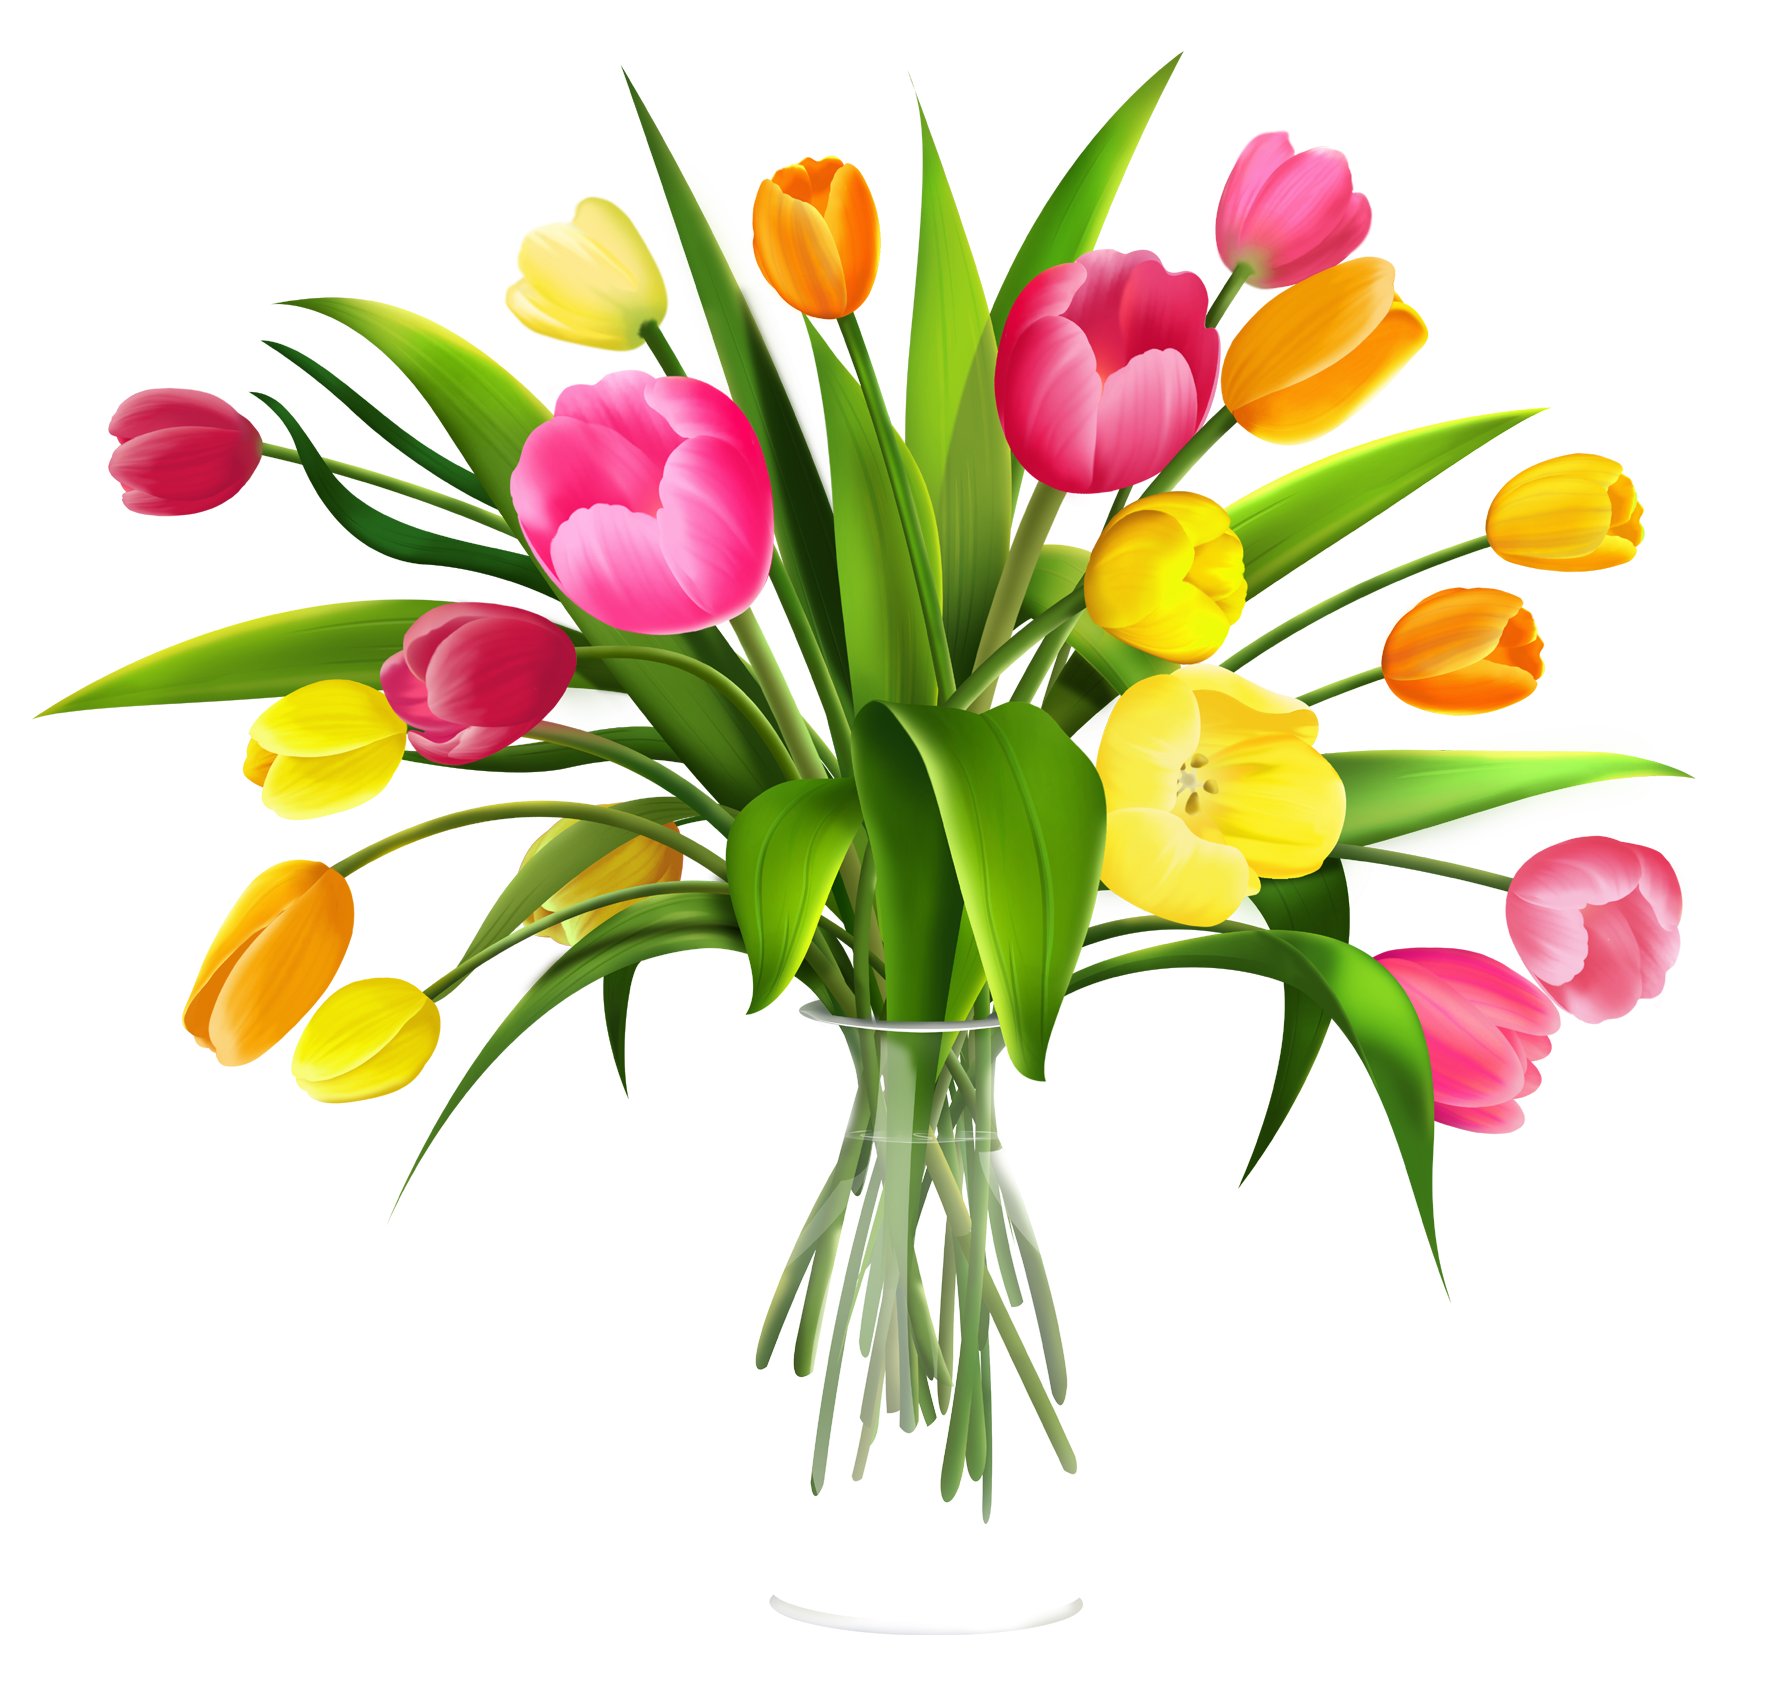 hight resolution of free clip art flowers in vase use these free images for your websites art